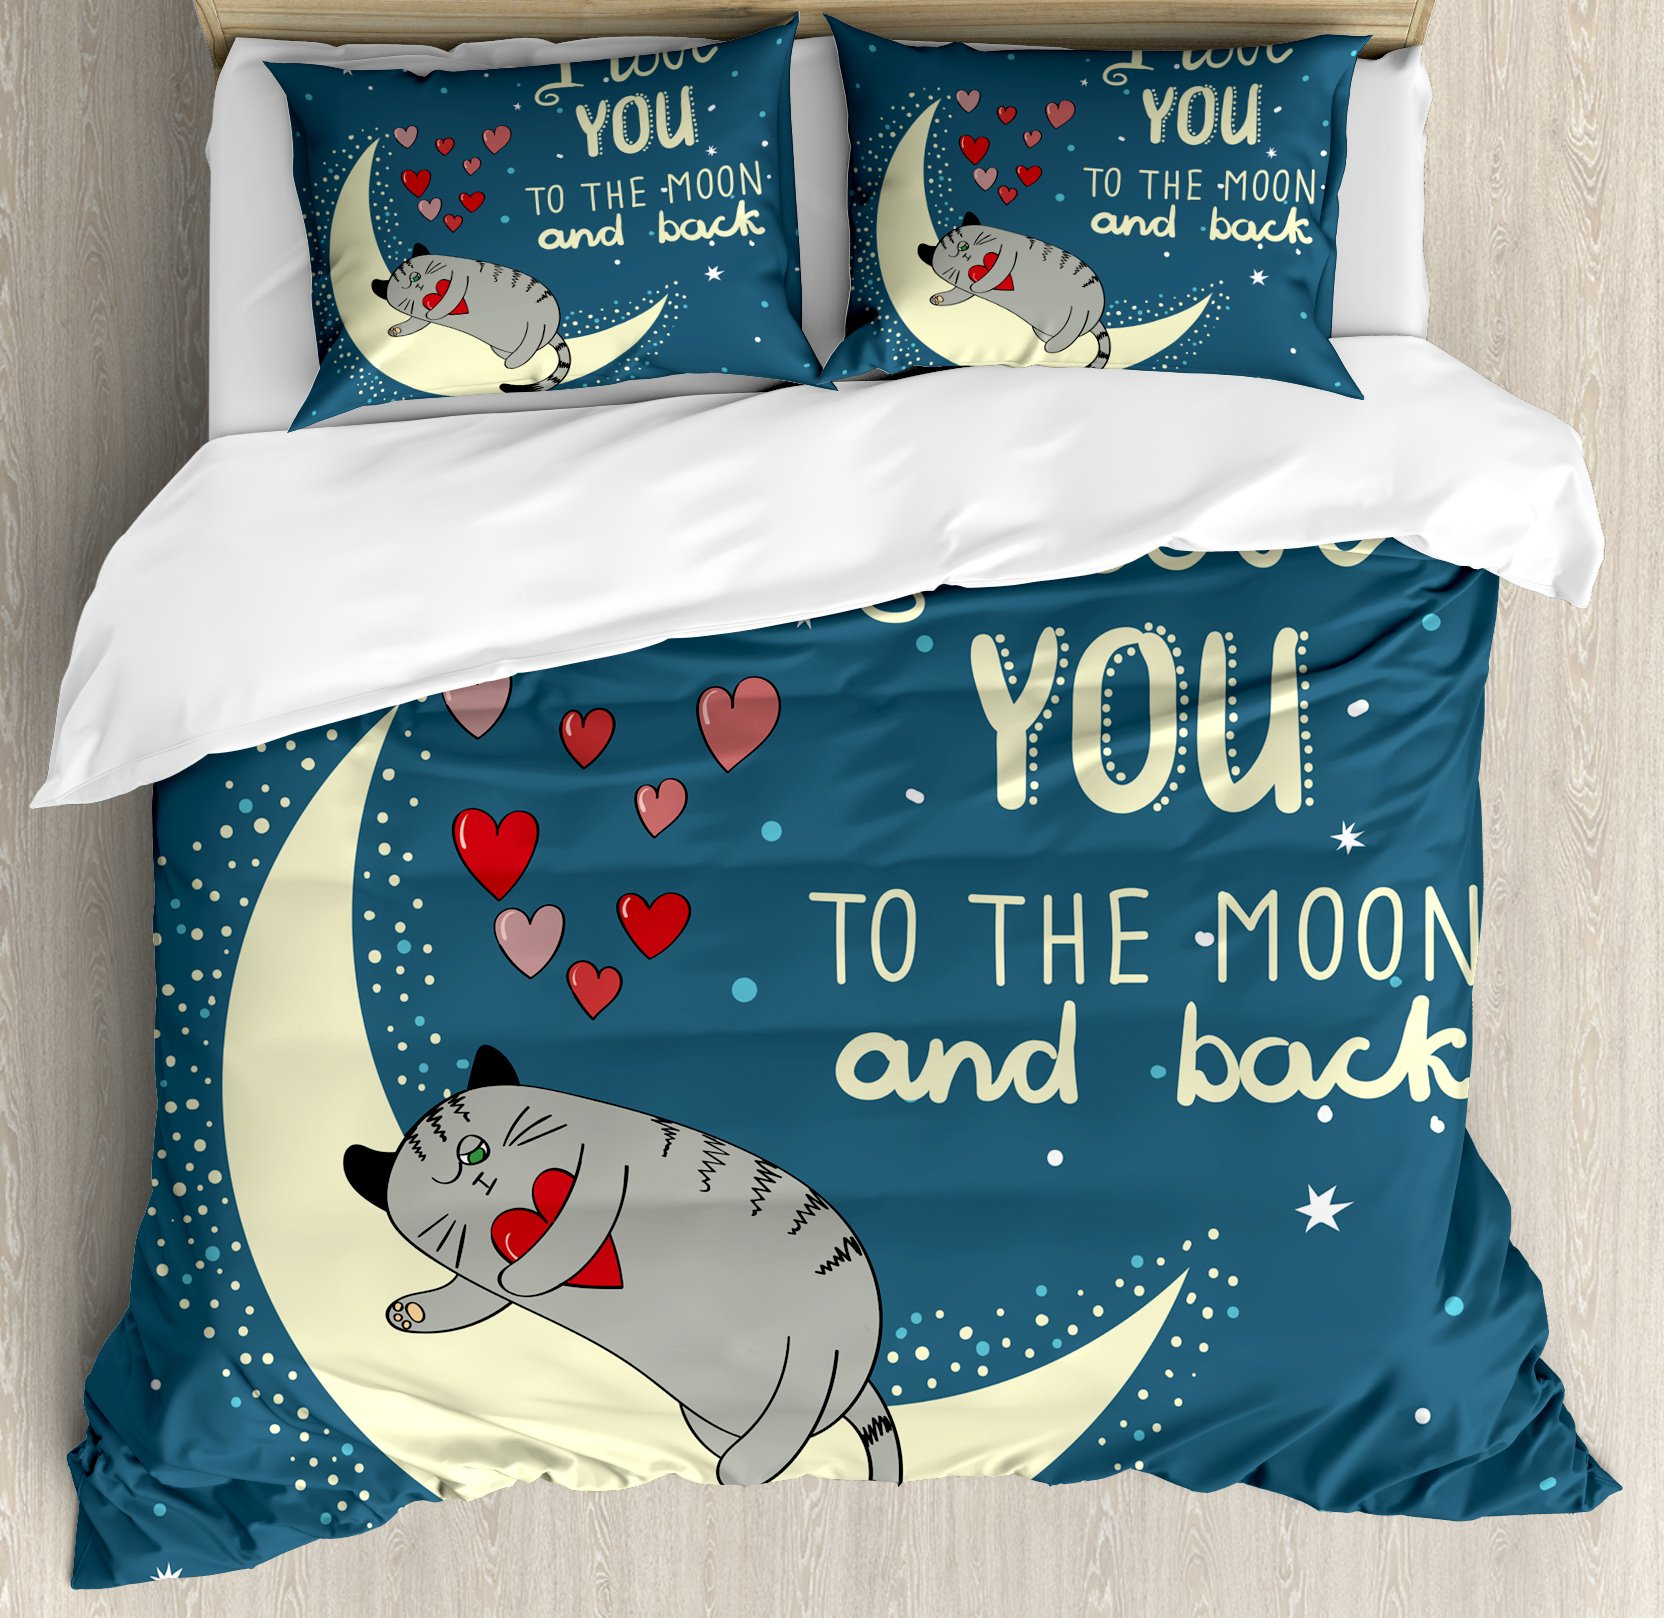 I Love You Duvet Cover Set King Size by Ambesonne, Sleepy Cat Holding Hearts over the Moon at Night Sky Kitty Caricature, Decorative 3 Piece Bedding Set with 2 Pillow Shams, Slate Blue Grey Ivory